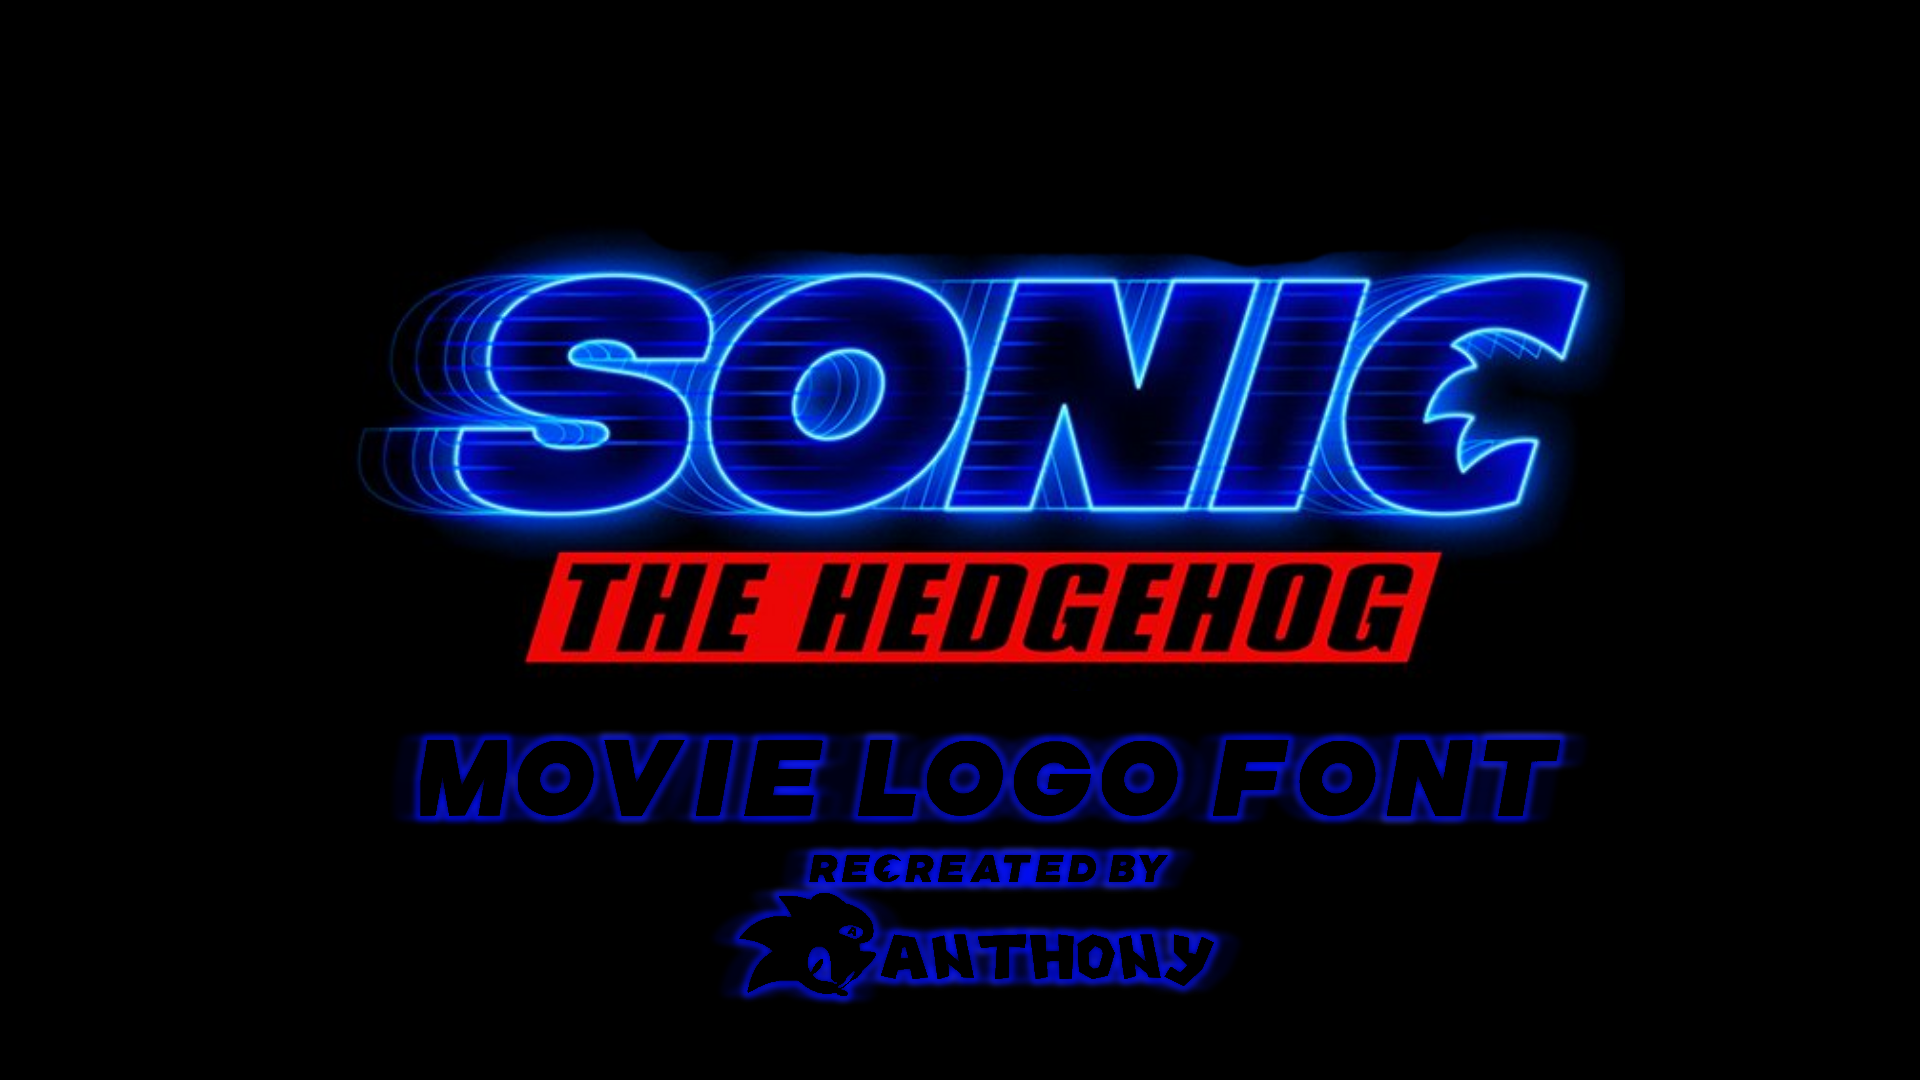 Sonic The Hedgehog Movie Logo Font By Anthonythelogoremake On